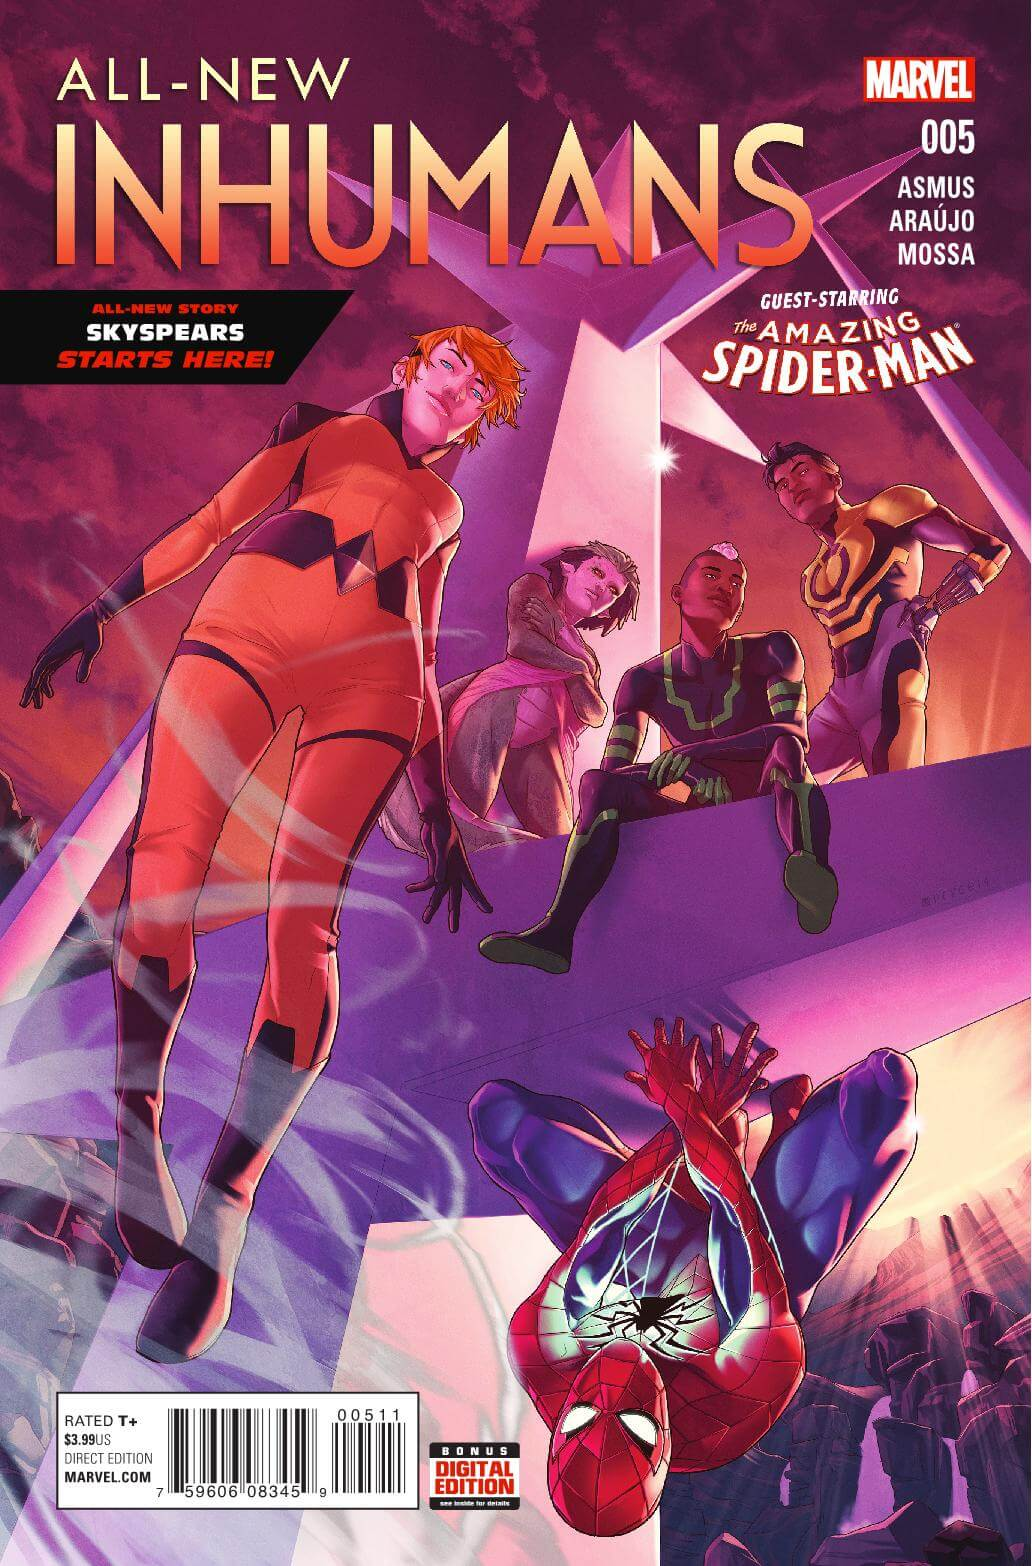 All New All Different Avengers Vol 1 2: Preview: All-New Inhumans #5